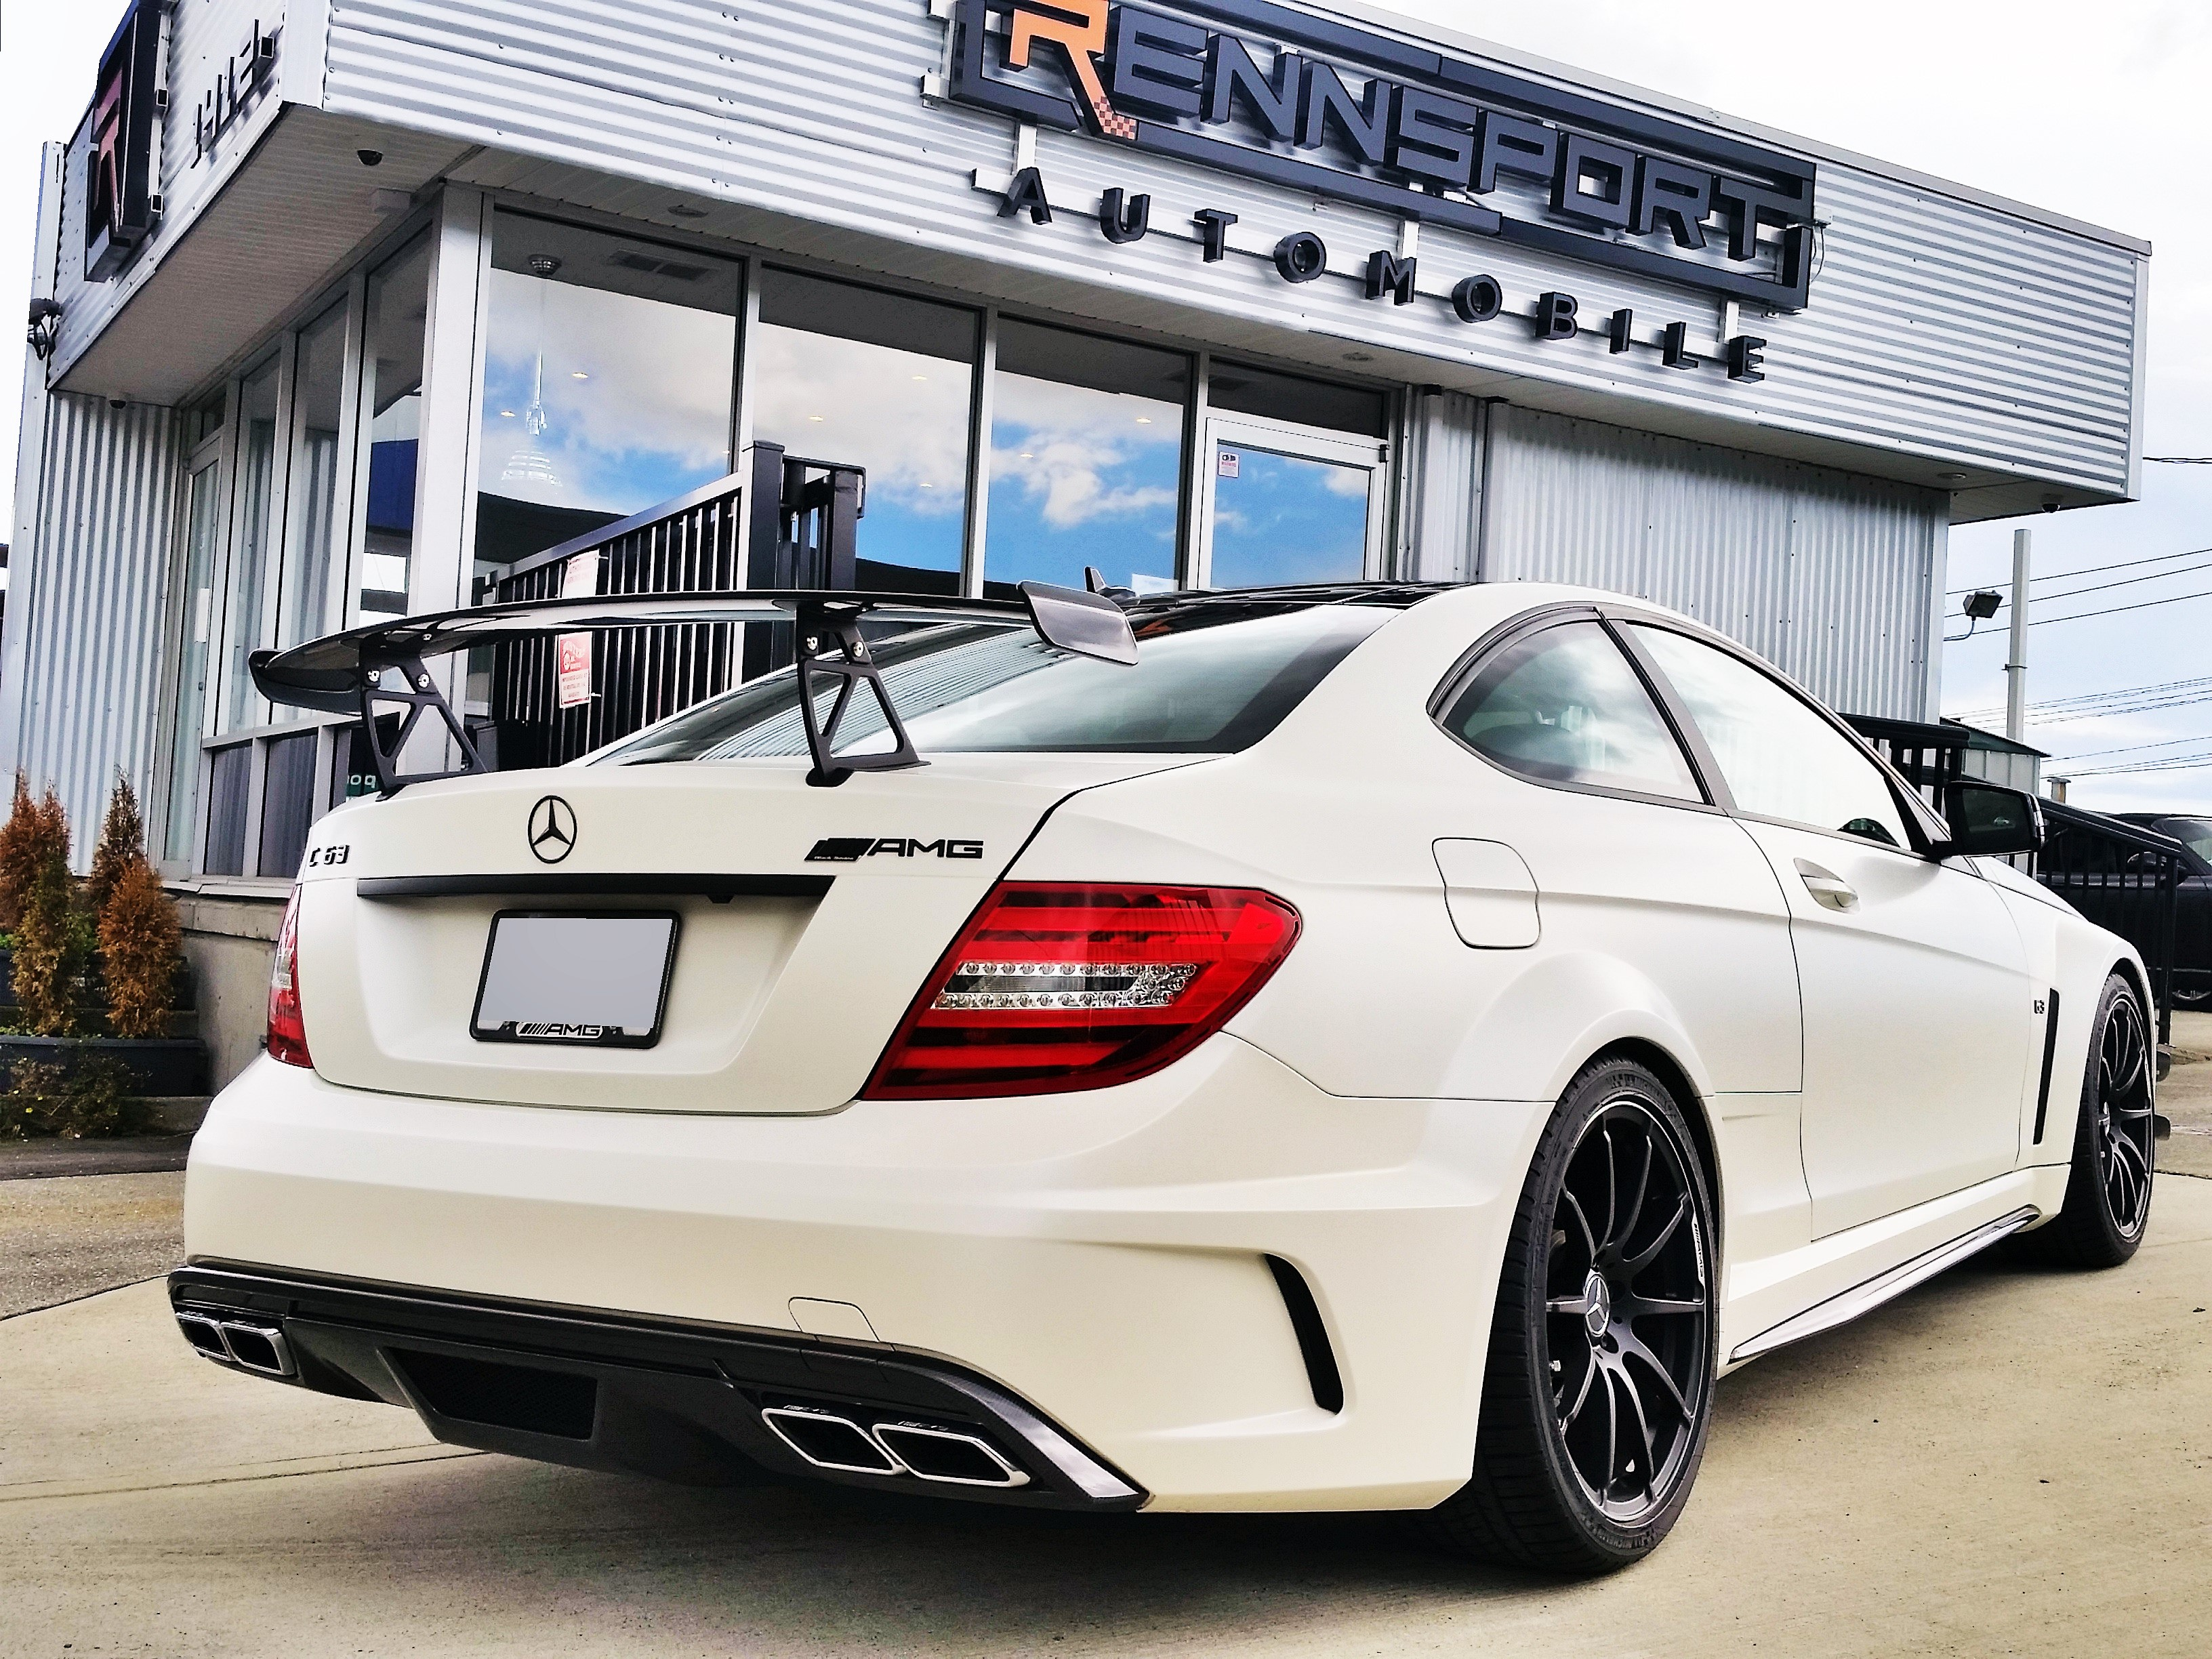 2013 mbenz c63 amg black series rennsport automobile. Black Bedroom Furniture Sets. Home Design Ideas